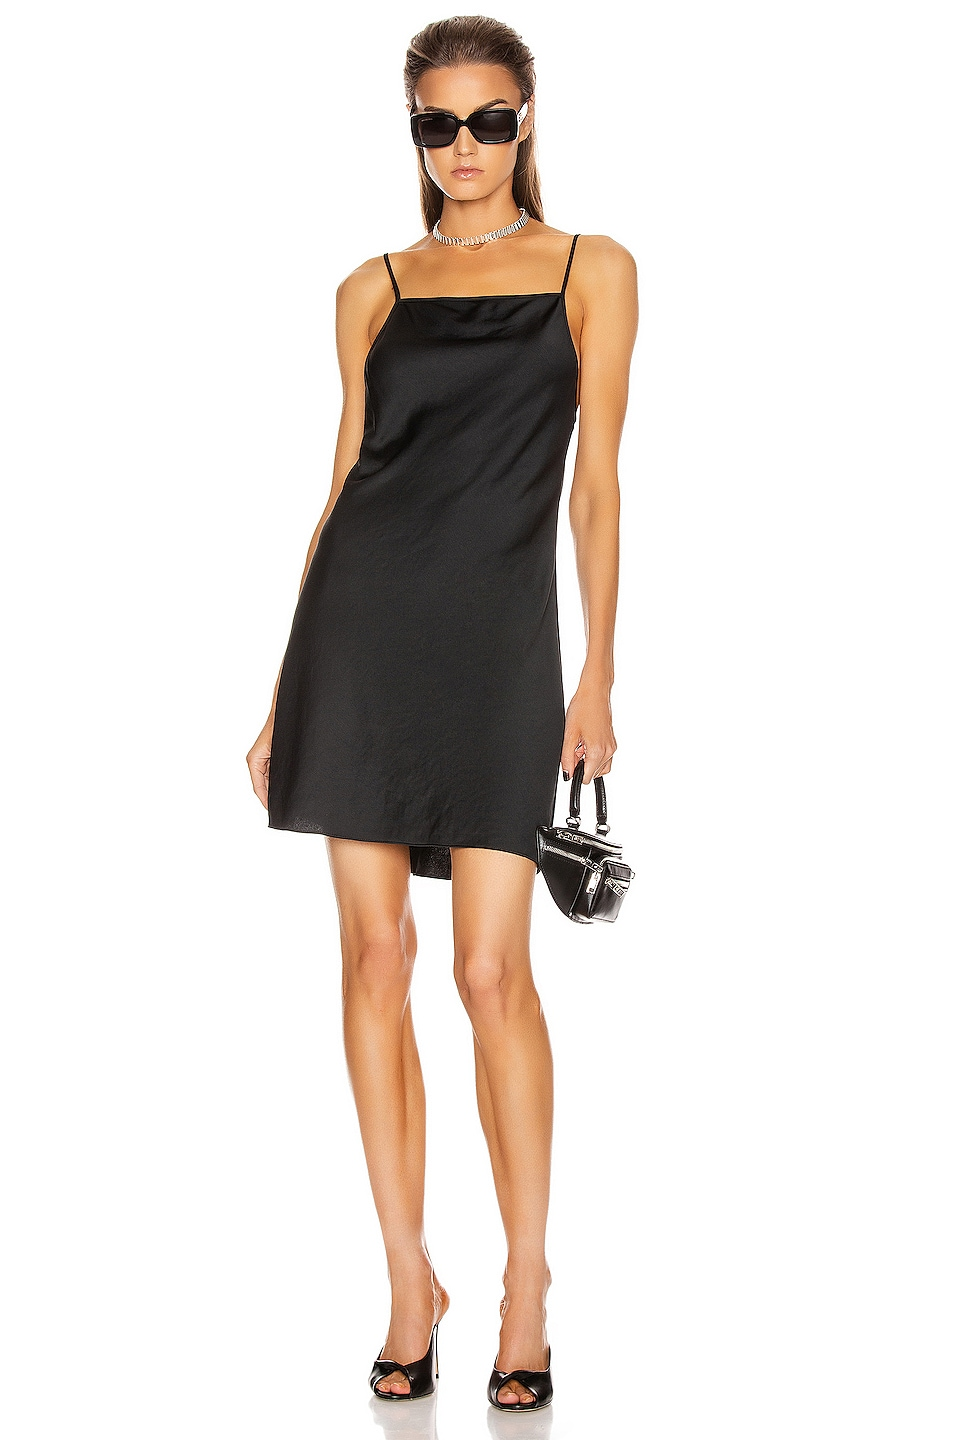 Image 1 of T by Alexander Wang Light Wash & Go Mini Cami Dress in Black